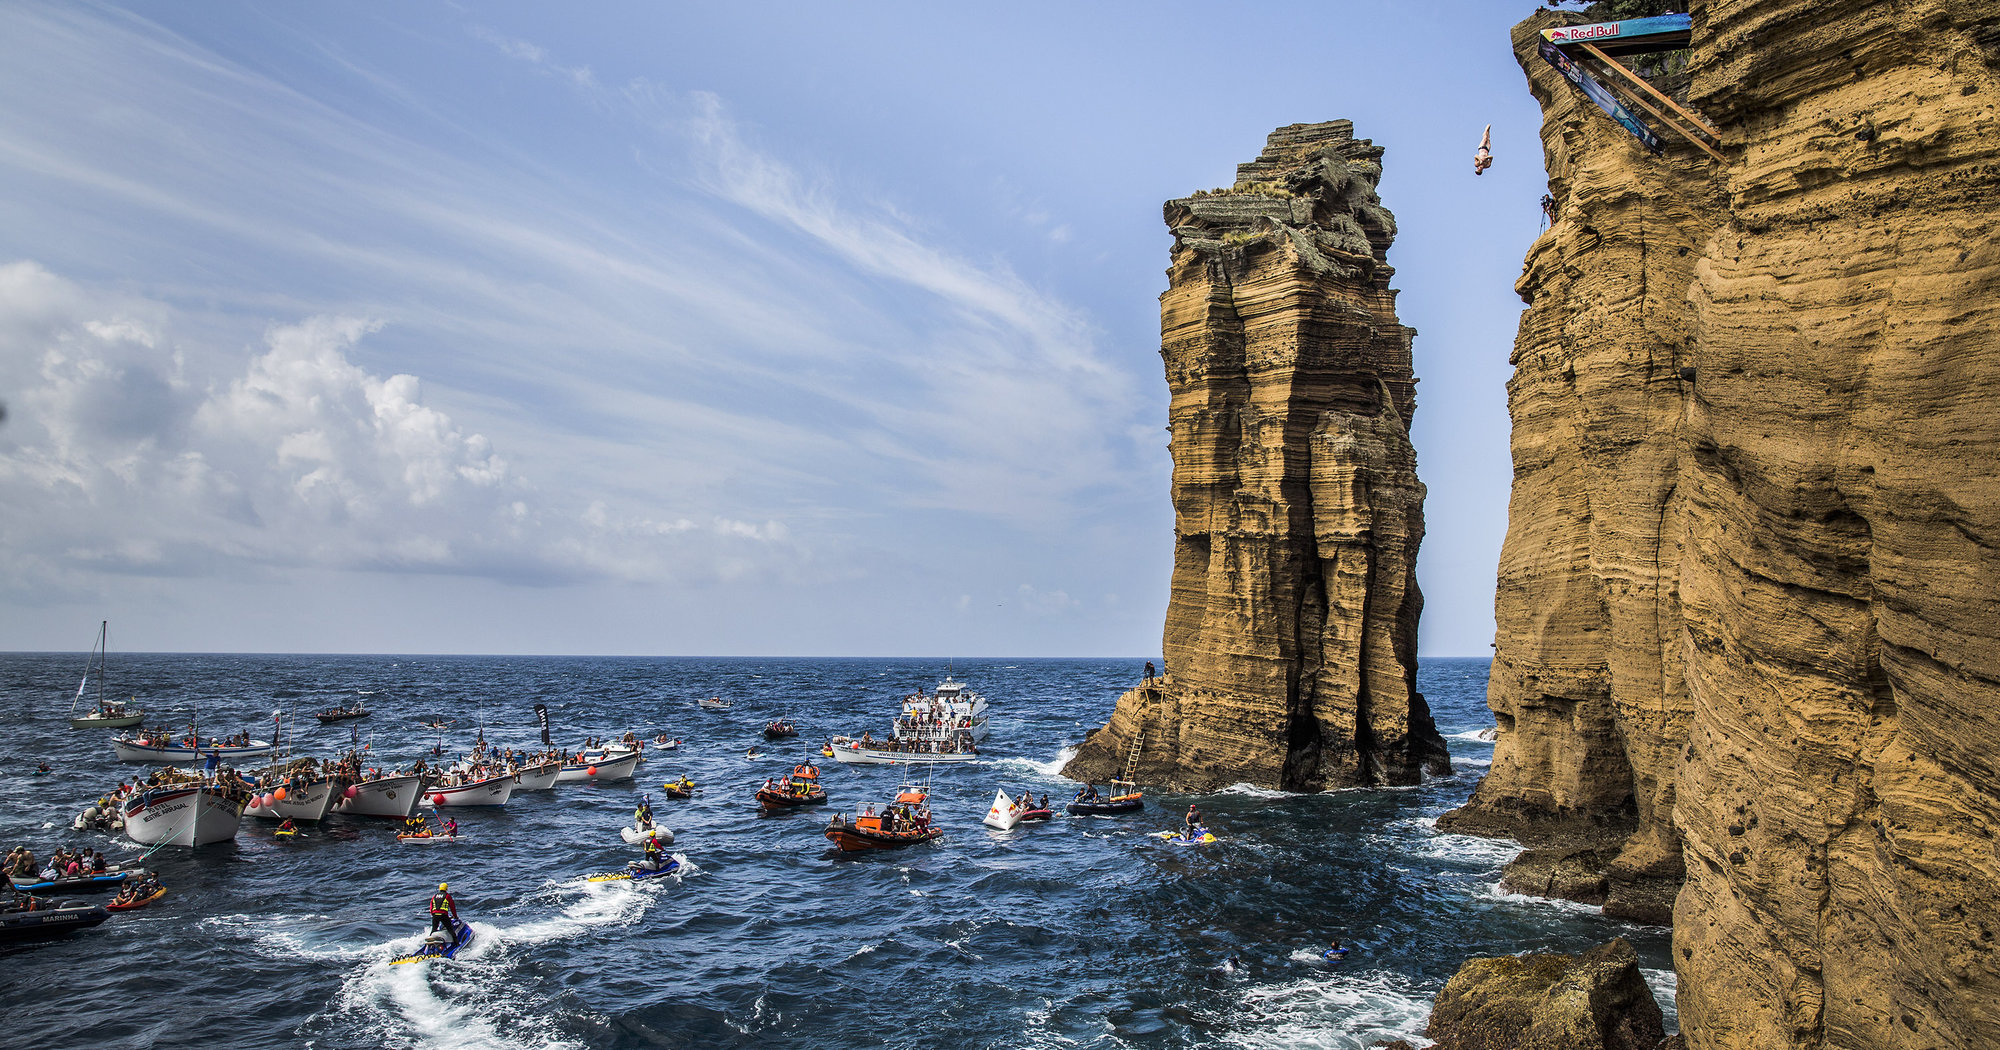 Andy Jones of the USA dives from the 27 metre platform on Islet Vila Franca do Campo during the fifth stop of the Red Bull Cliff Diving World Series, Azores, Portugal, on July 26th 2014.